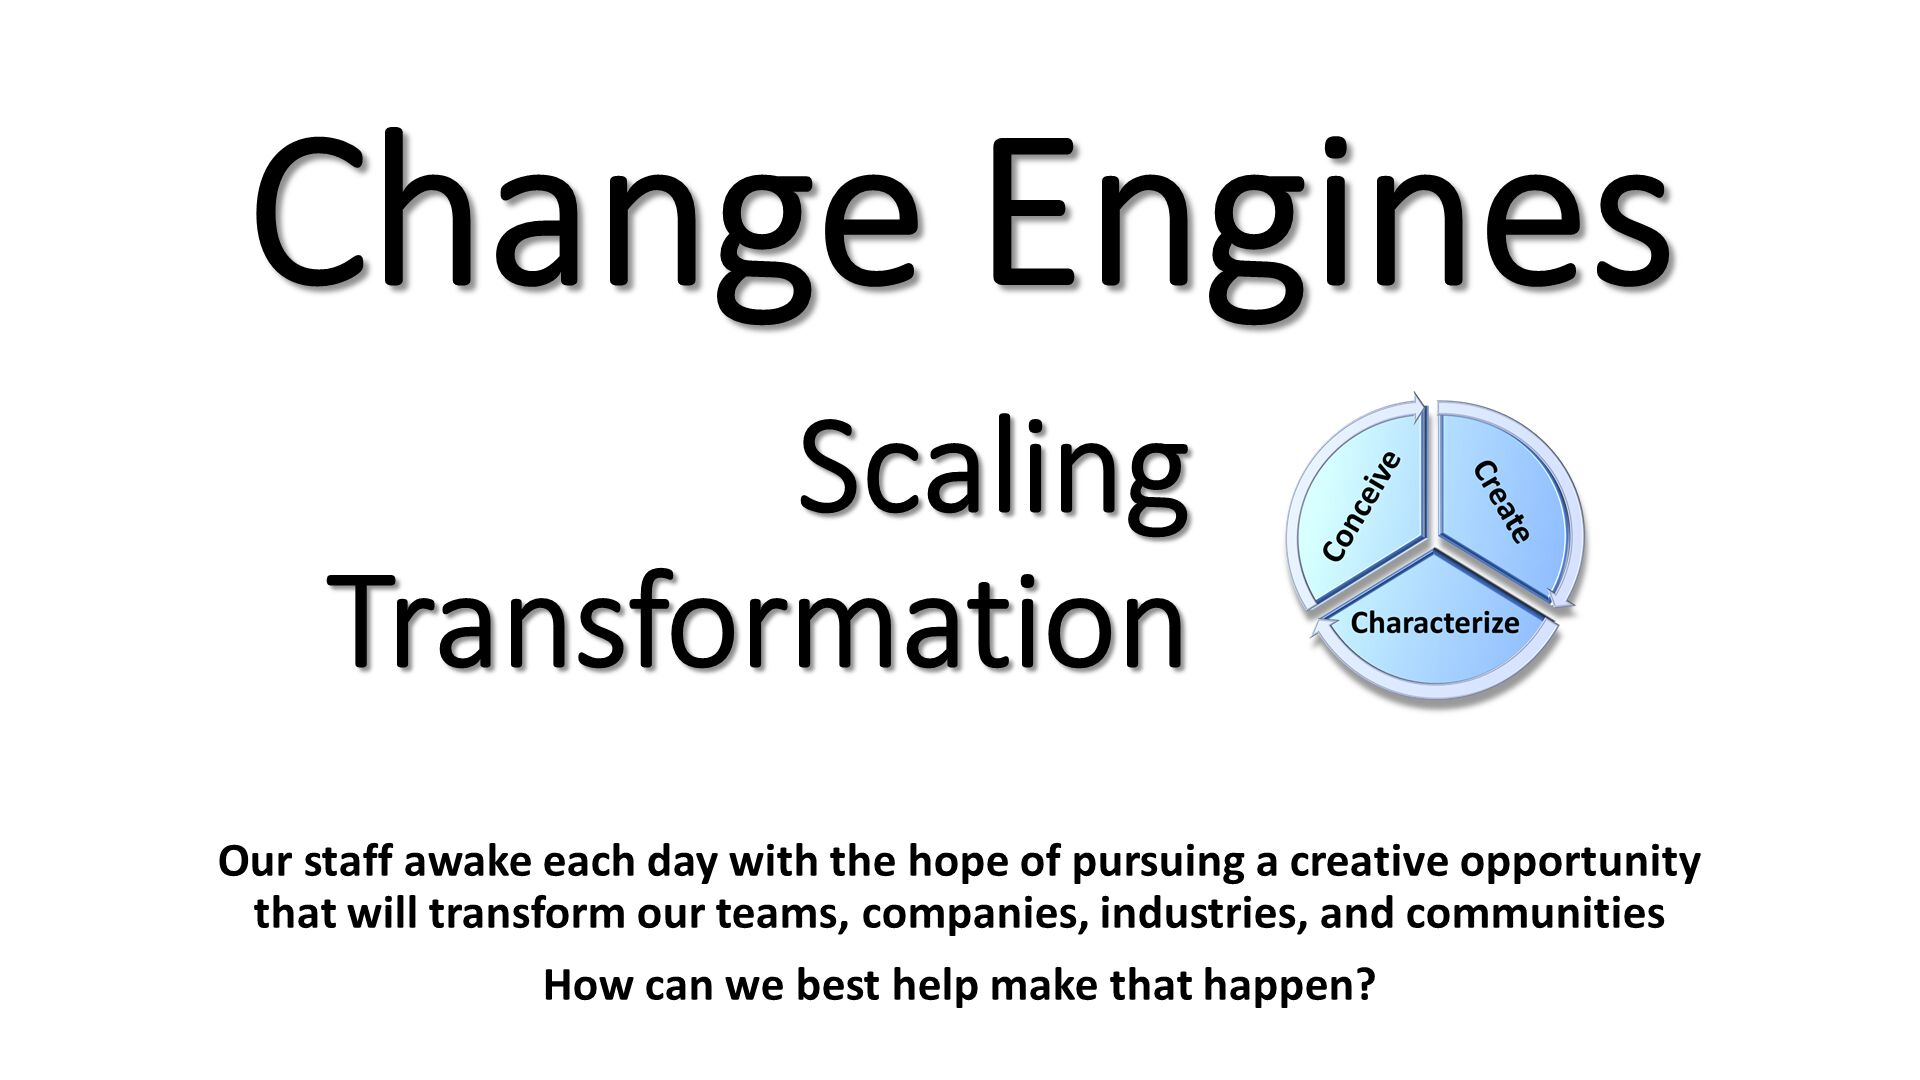 Change Engines. Our staff awake each day with the hope of pursuing a creative opportunity that will transform our teams, companies, industries, and communities How can we best help make that happen?.